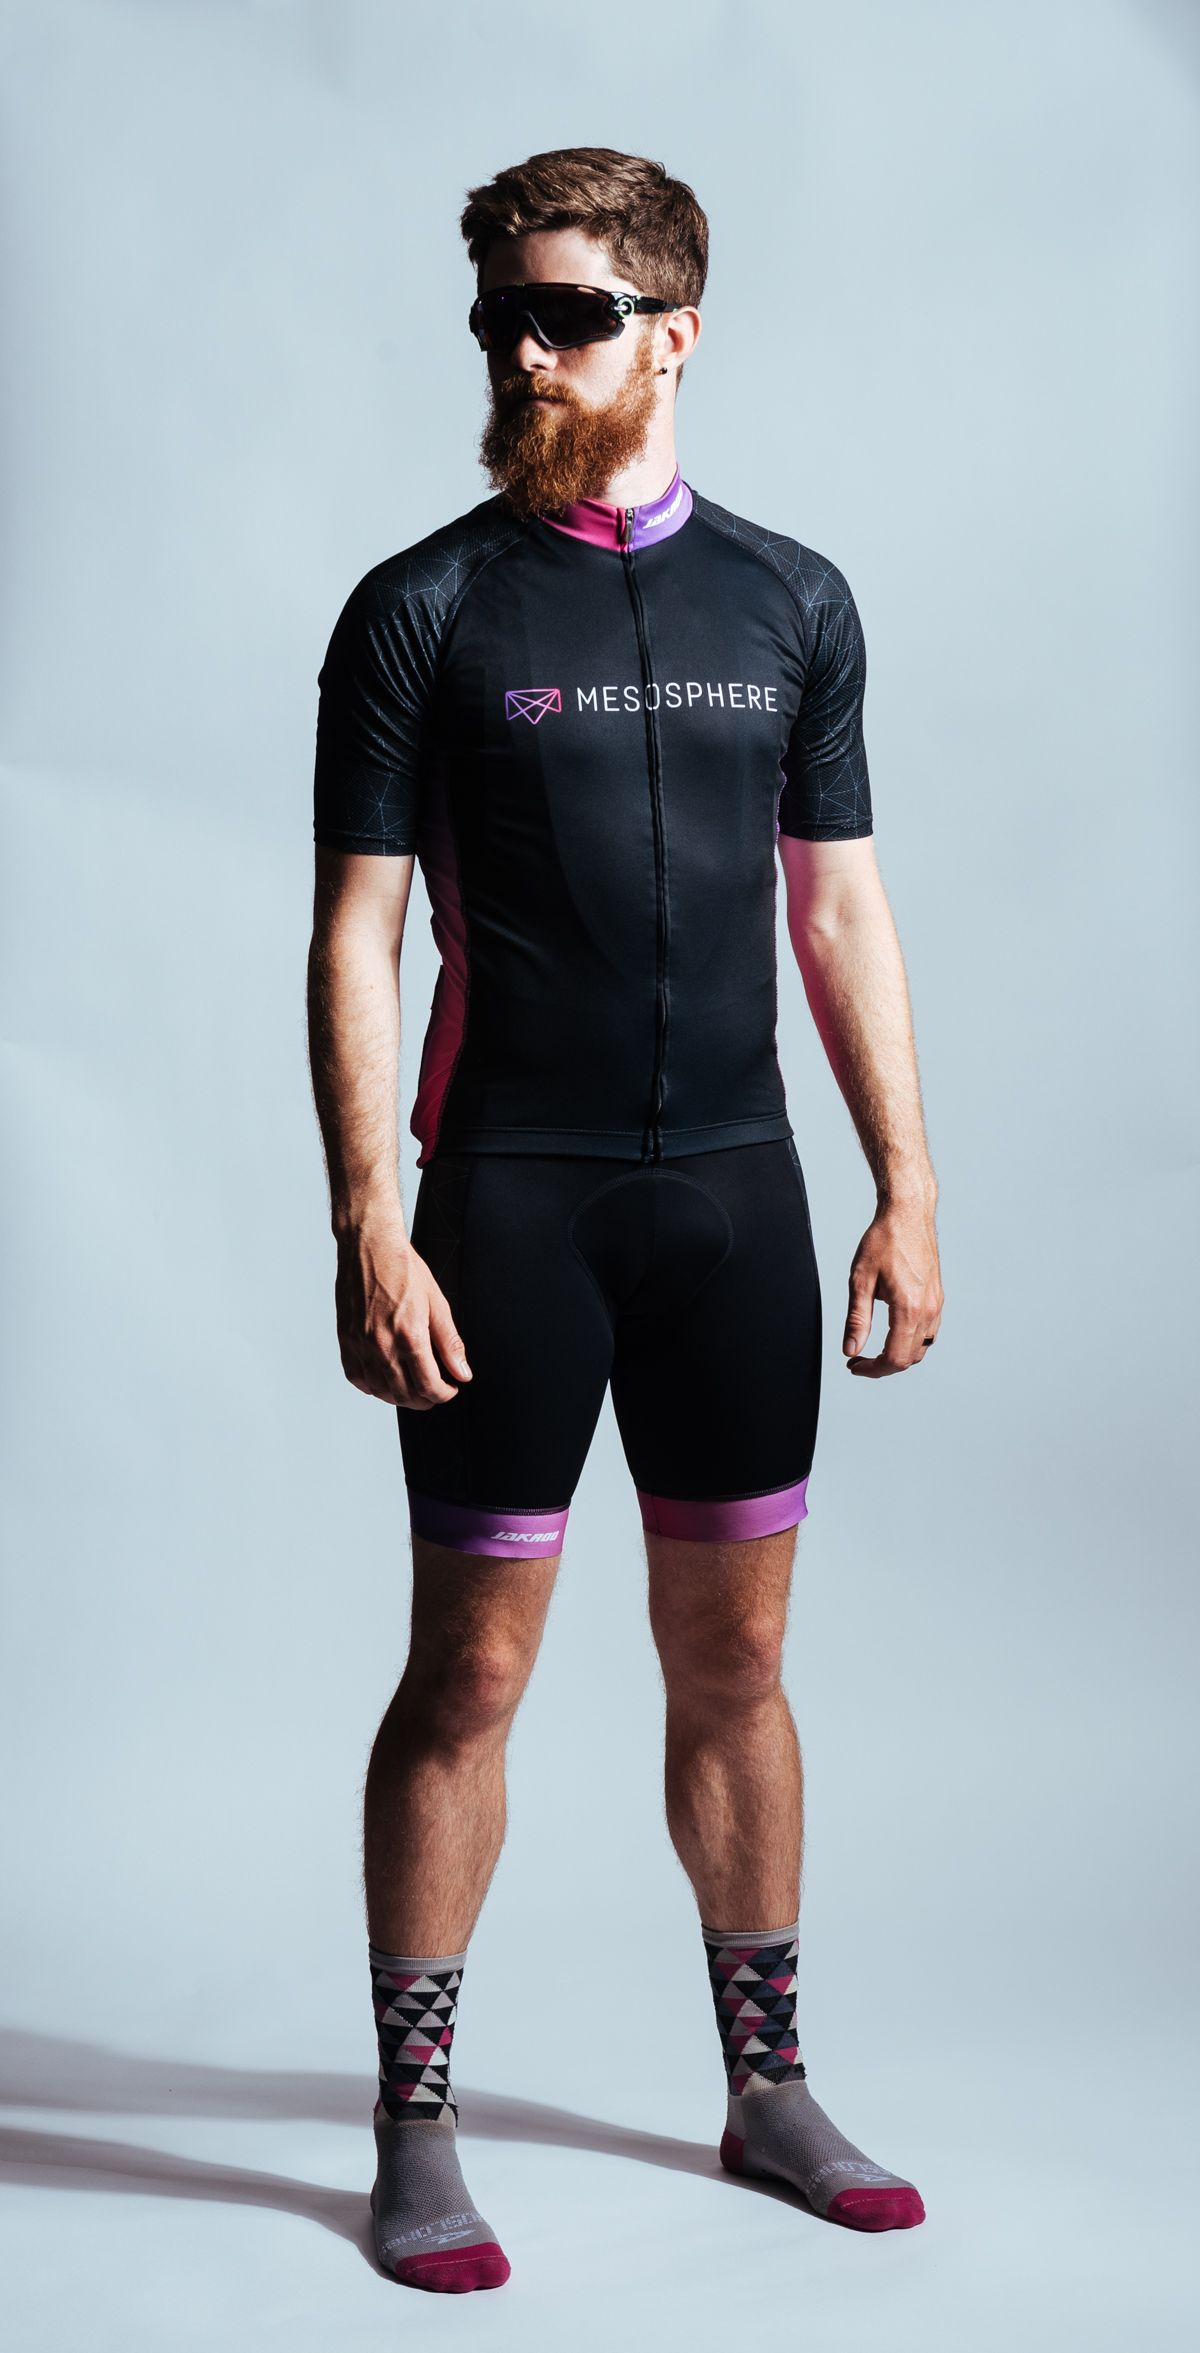 Mesosphere Cycling Kit.  0d1341c9b